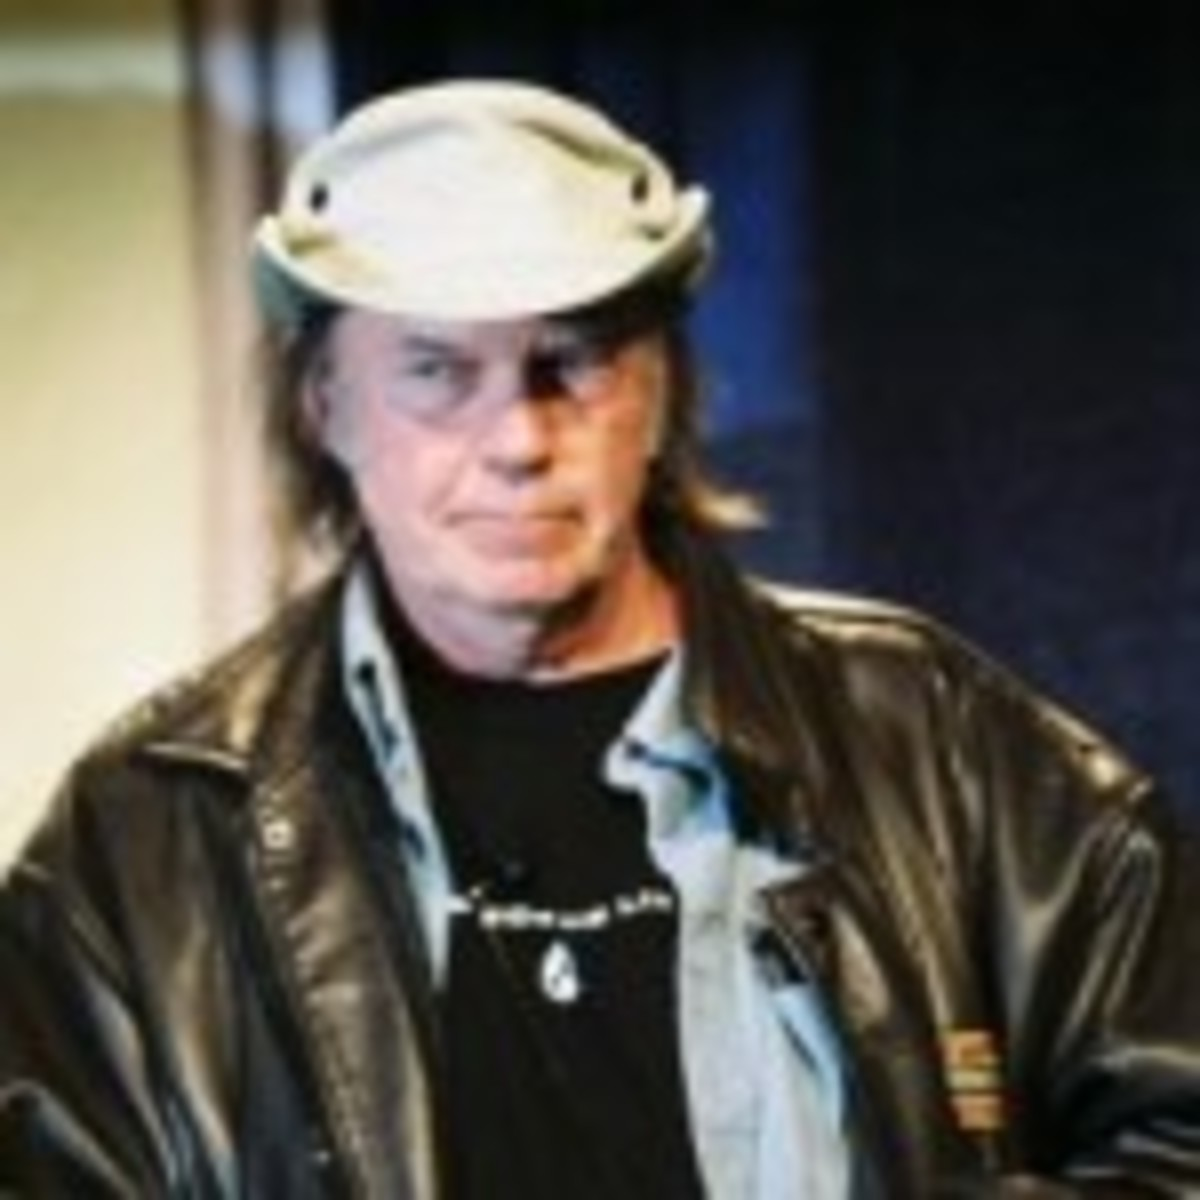 Neil Young at SXSW in 2006 (photo by Chris M. Junior)